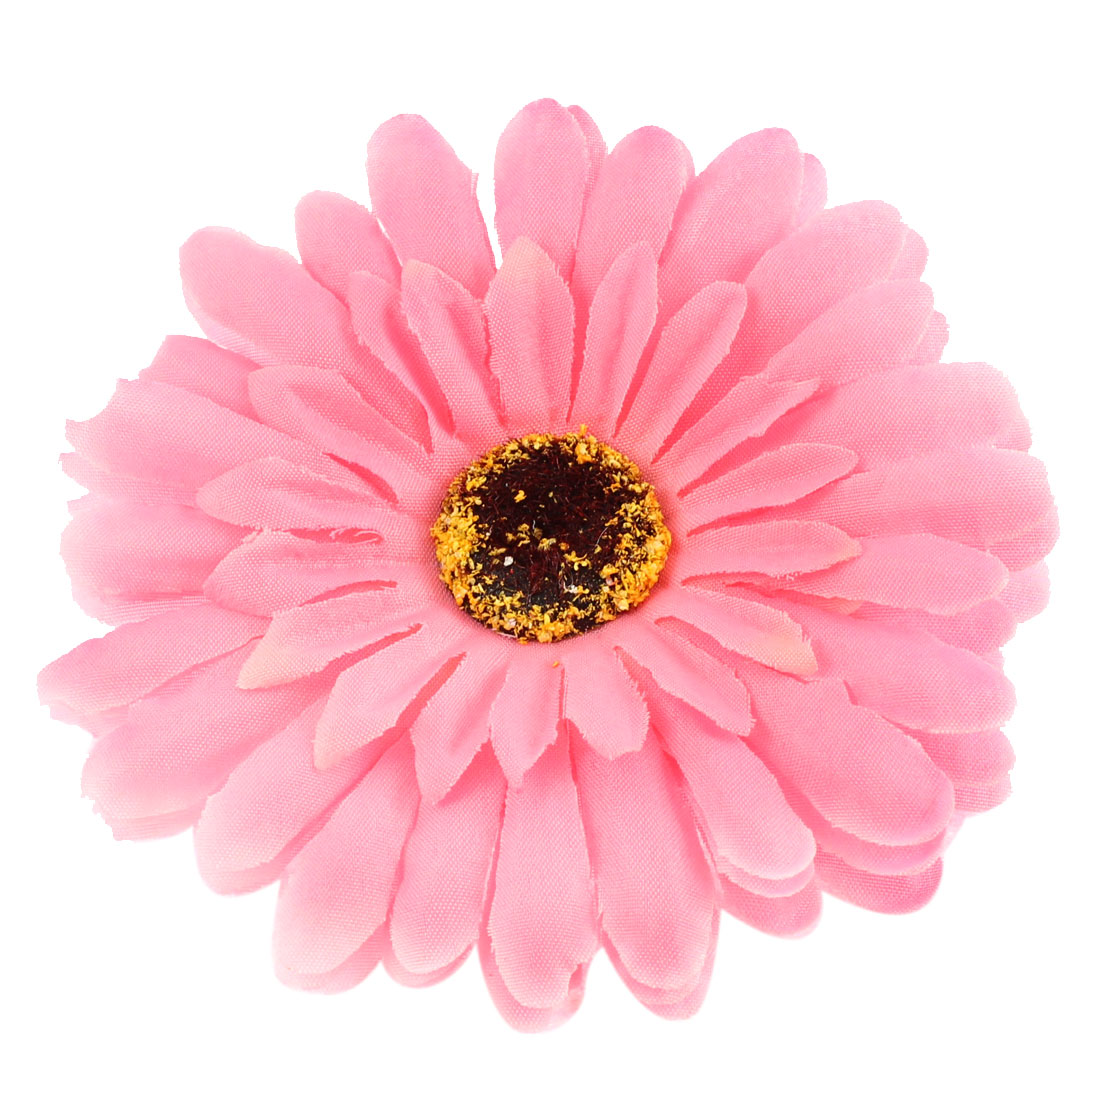 "Party Wedding Bride Artificial Daisy Flower Headwear Accessary 4"" Dia Pink"